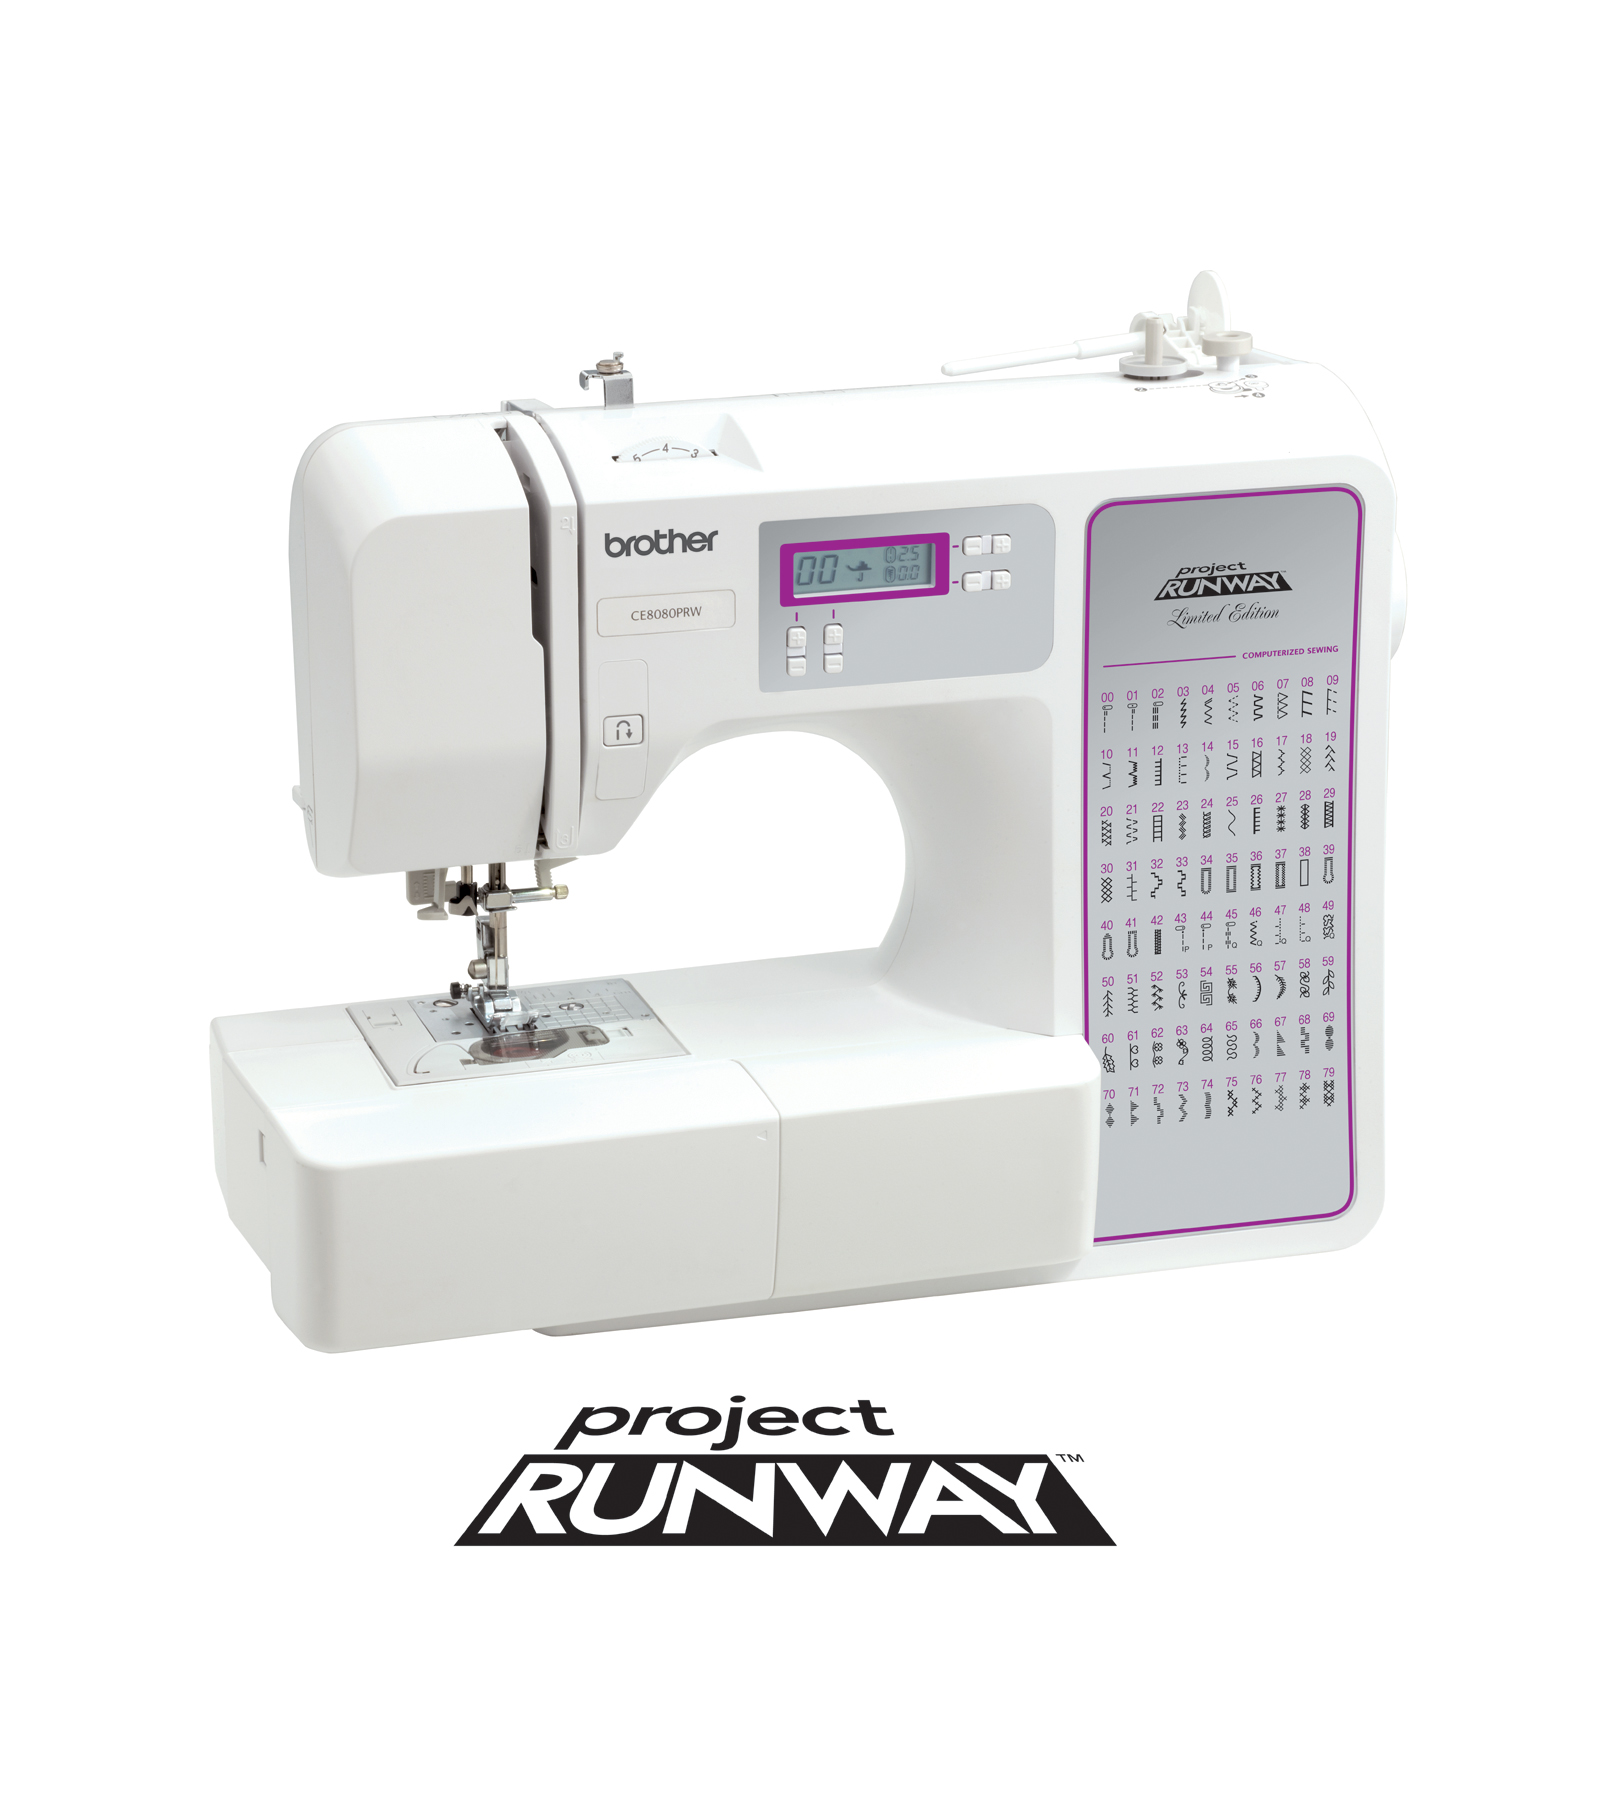 Quilting Machines \u0026 Embroidery Machines - Sewing | JOANN